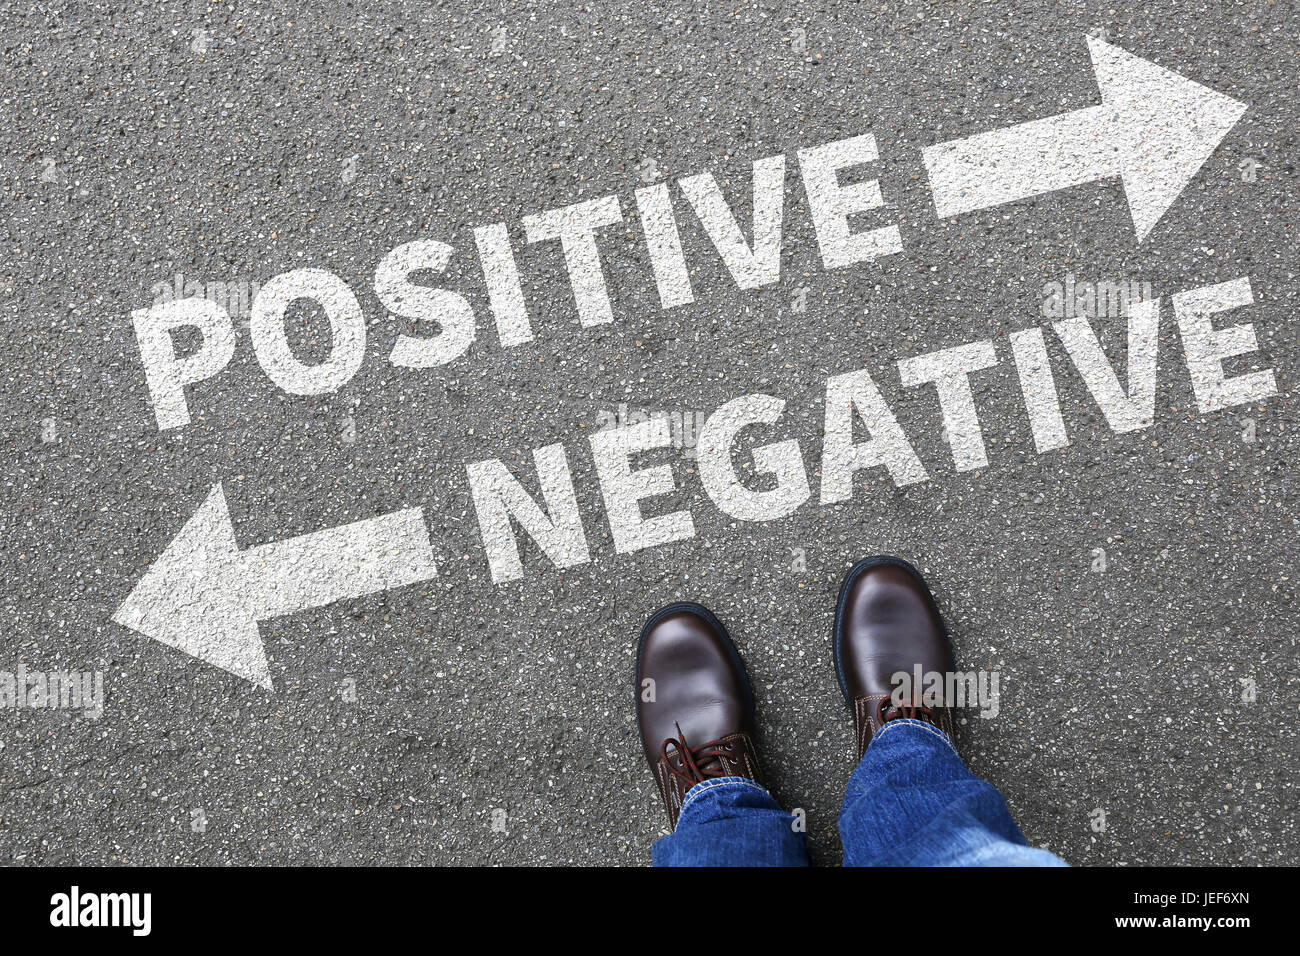 Negative positive thinking good bad thoughts attitude business concept decision decide choice - Stock Image